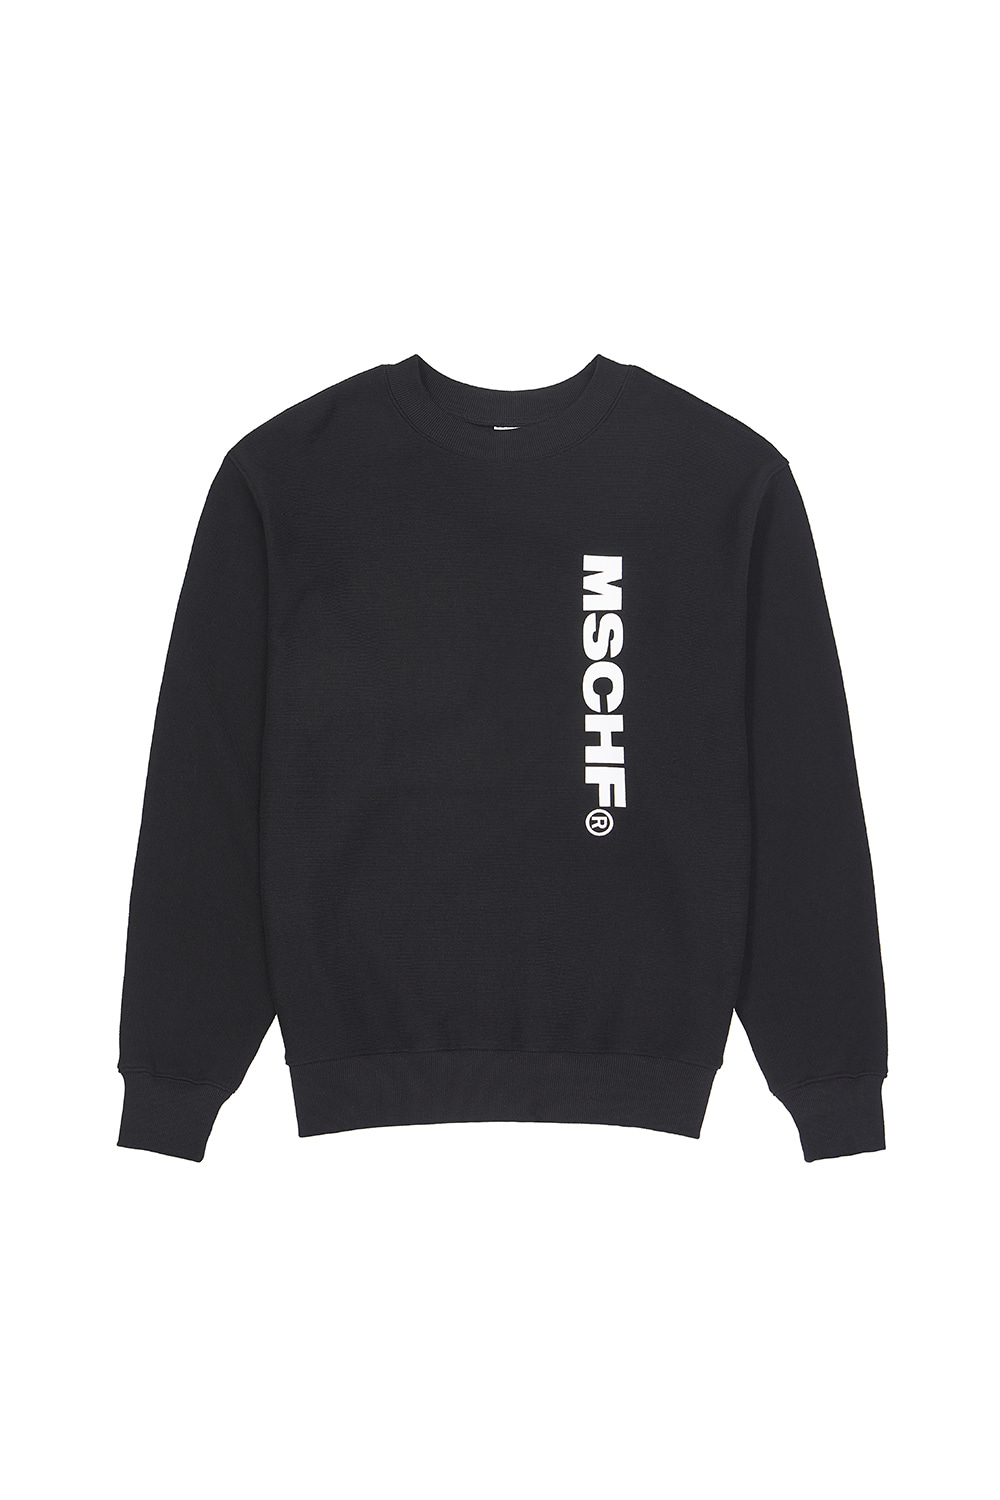 MSCHF_SLOGAN CREWNECK_black